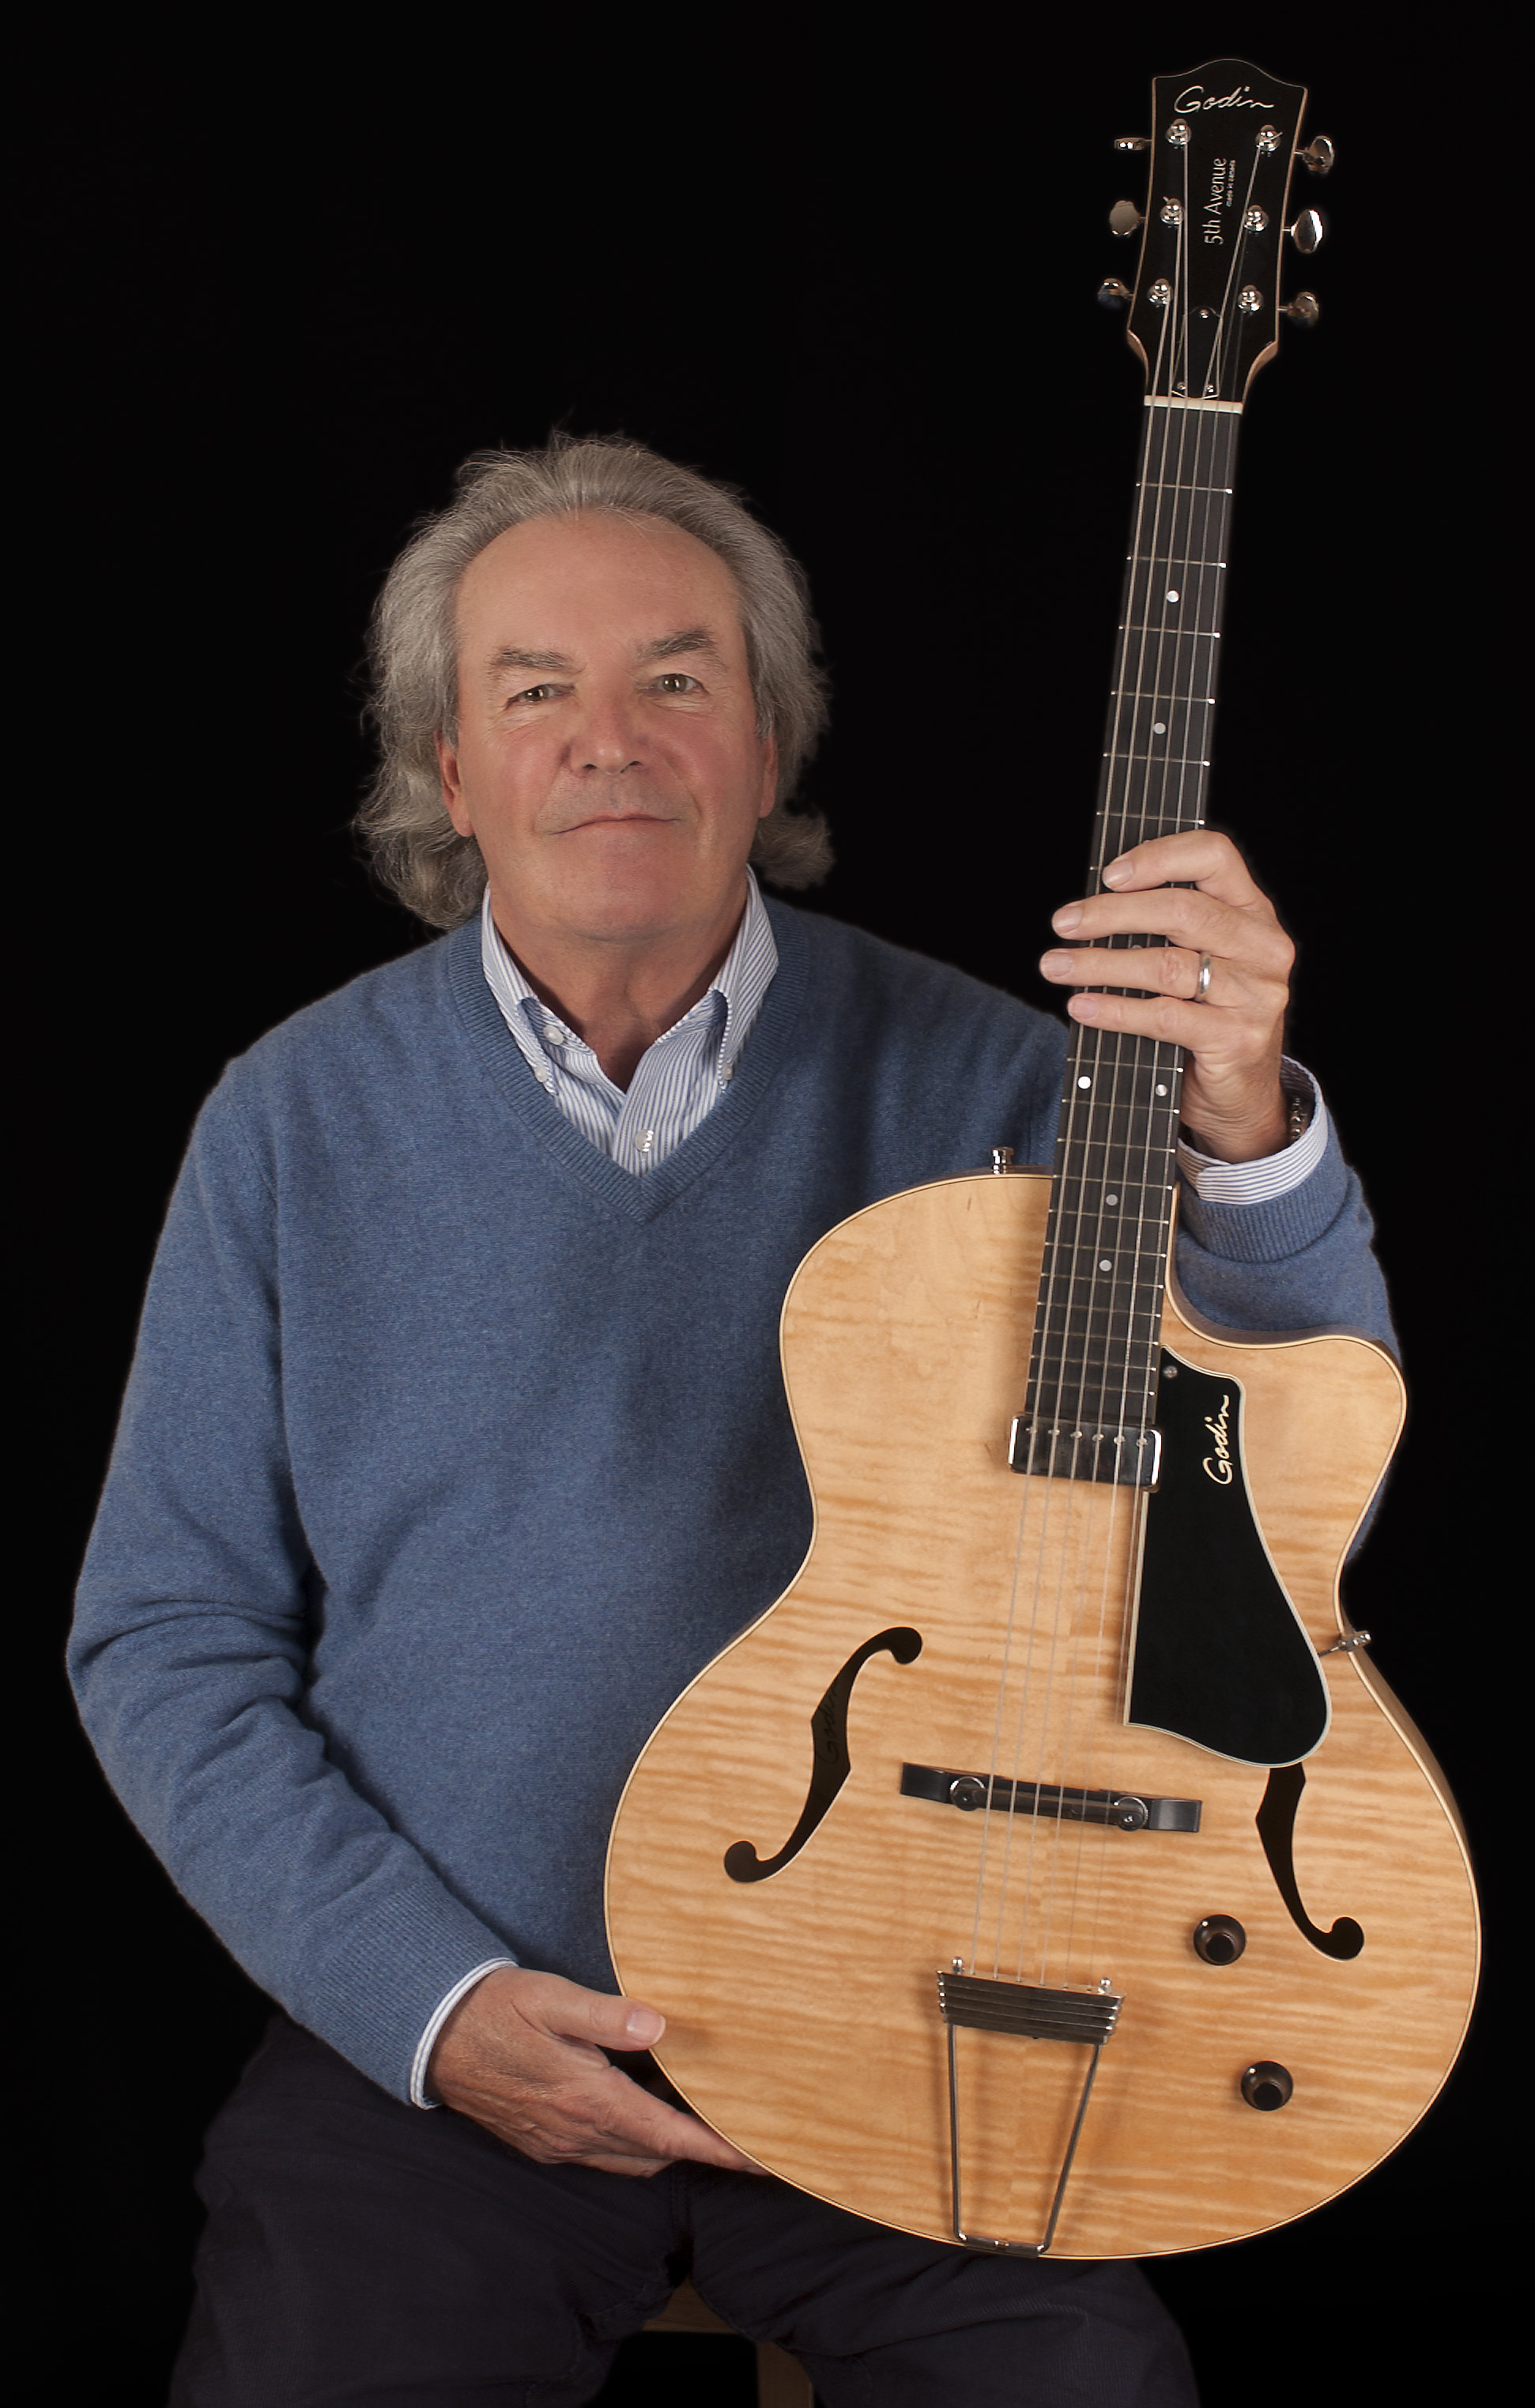 Robert Godin - The Foundation of Great Acoustic Sound and Playability